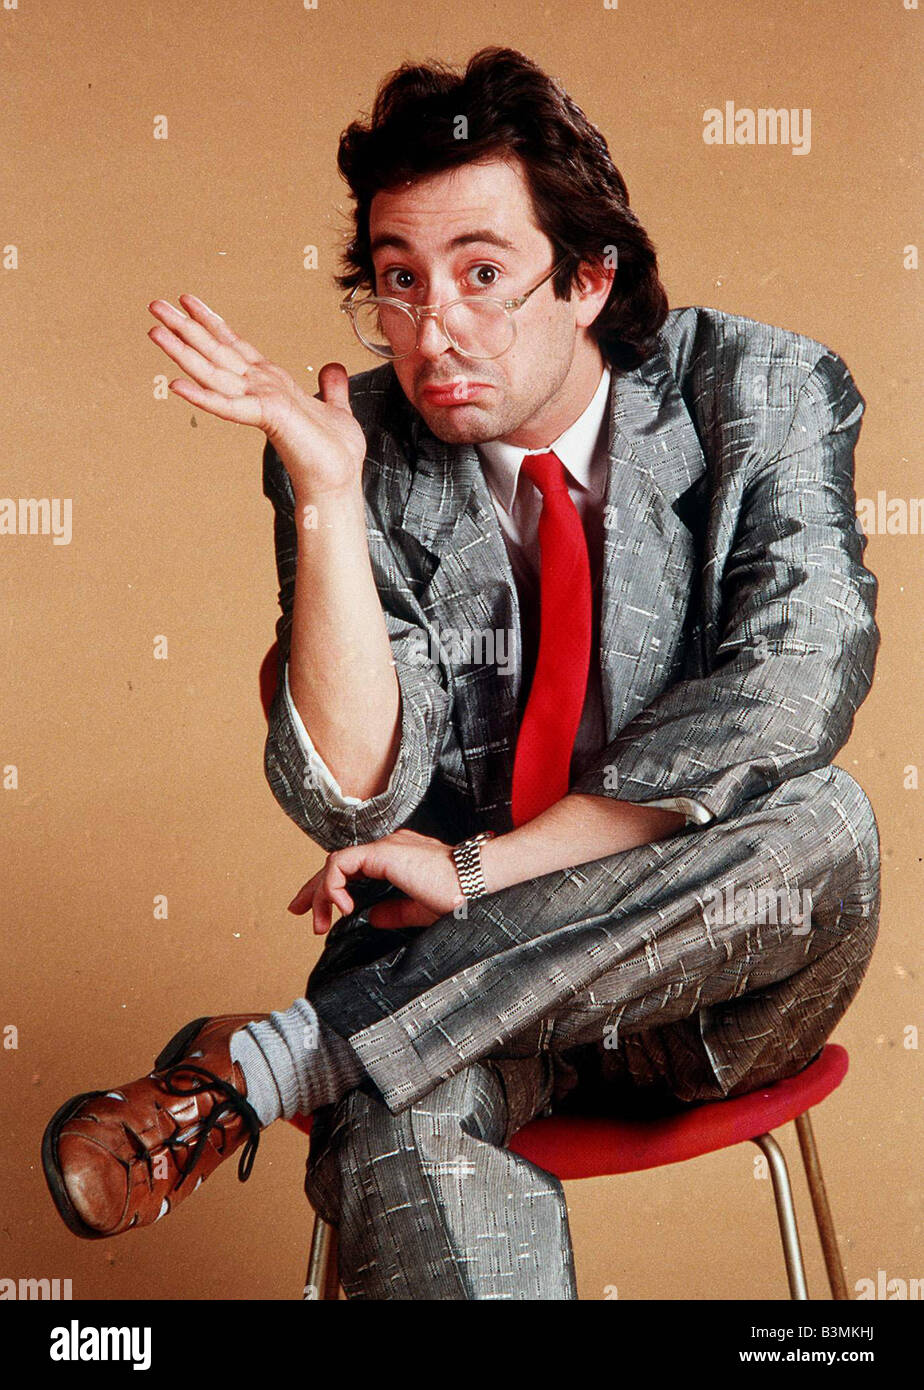 Ben Elton Comedian Sitting Hunched Over Mirrorpix Stock Photo